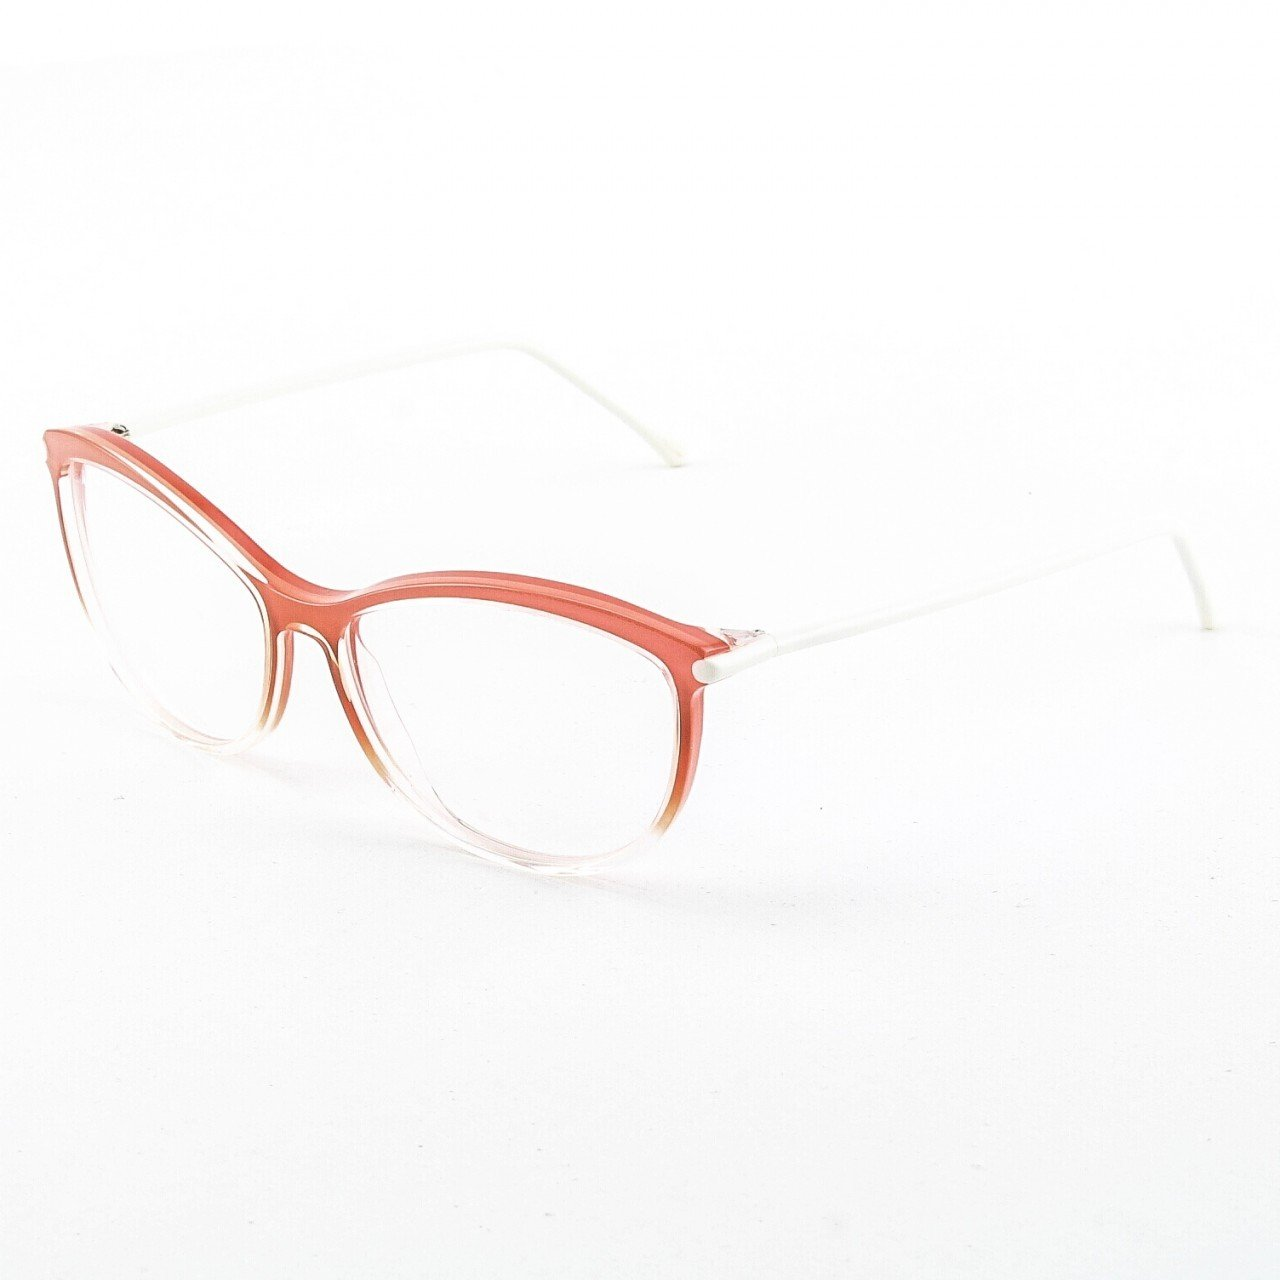 Marni MA677S Eyeglasses Col. 01 Crystal Salmon with White Enamel Temples and Clear Lenses